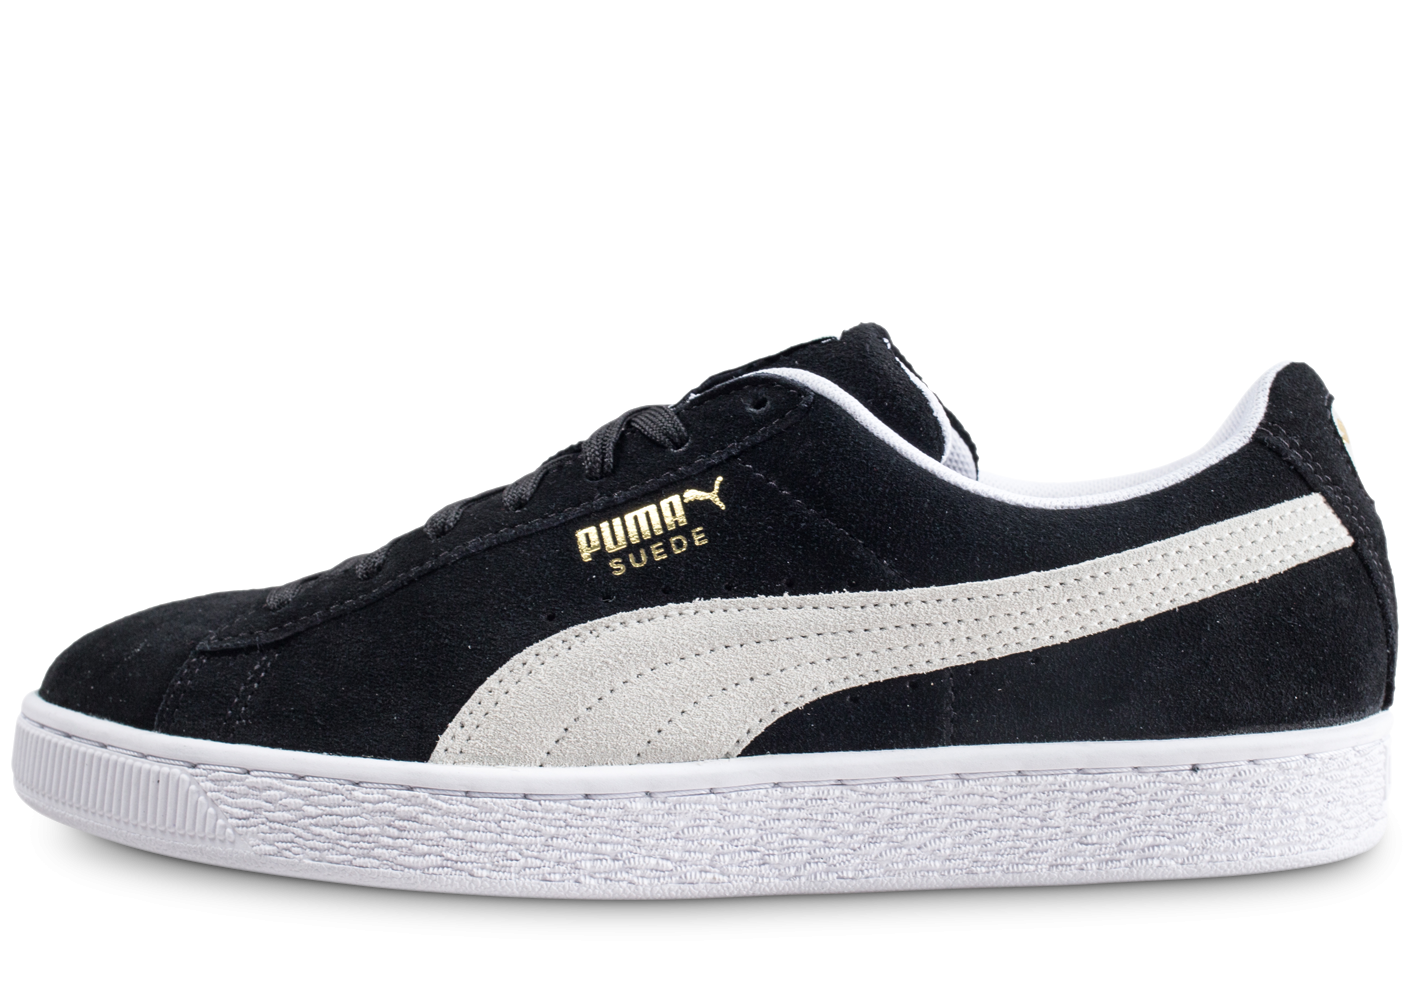 8f2007fd50b0a Puma Suede Classic Noire - Chaussures Baskets homme - Chausport